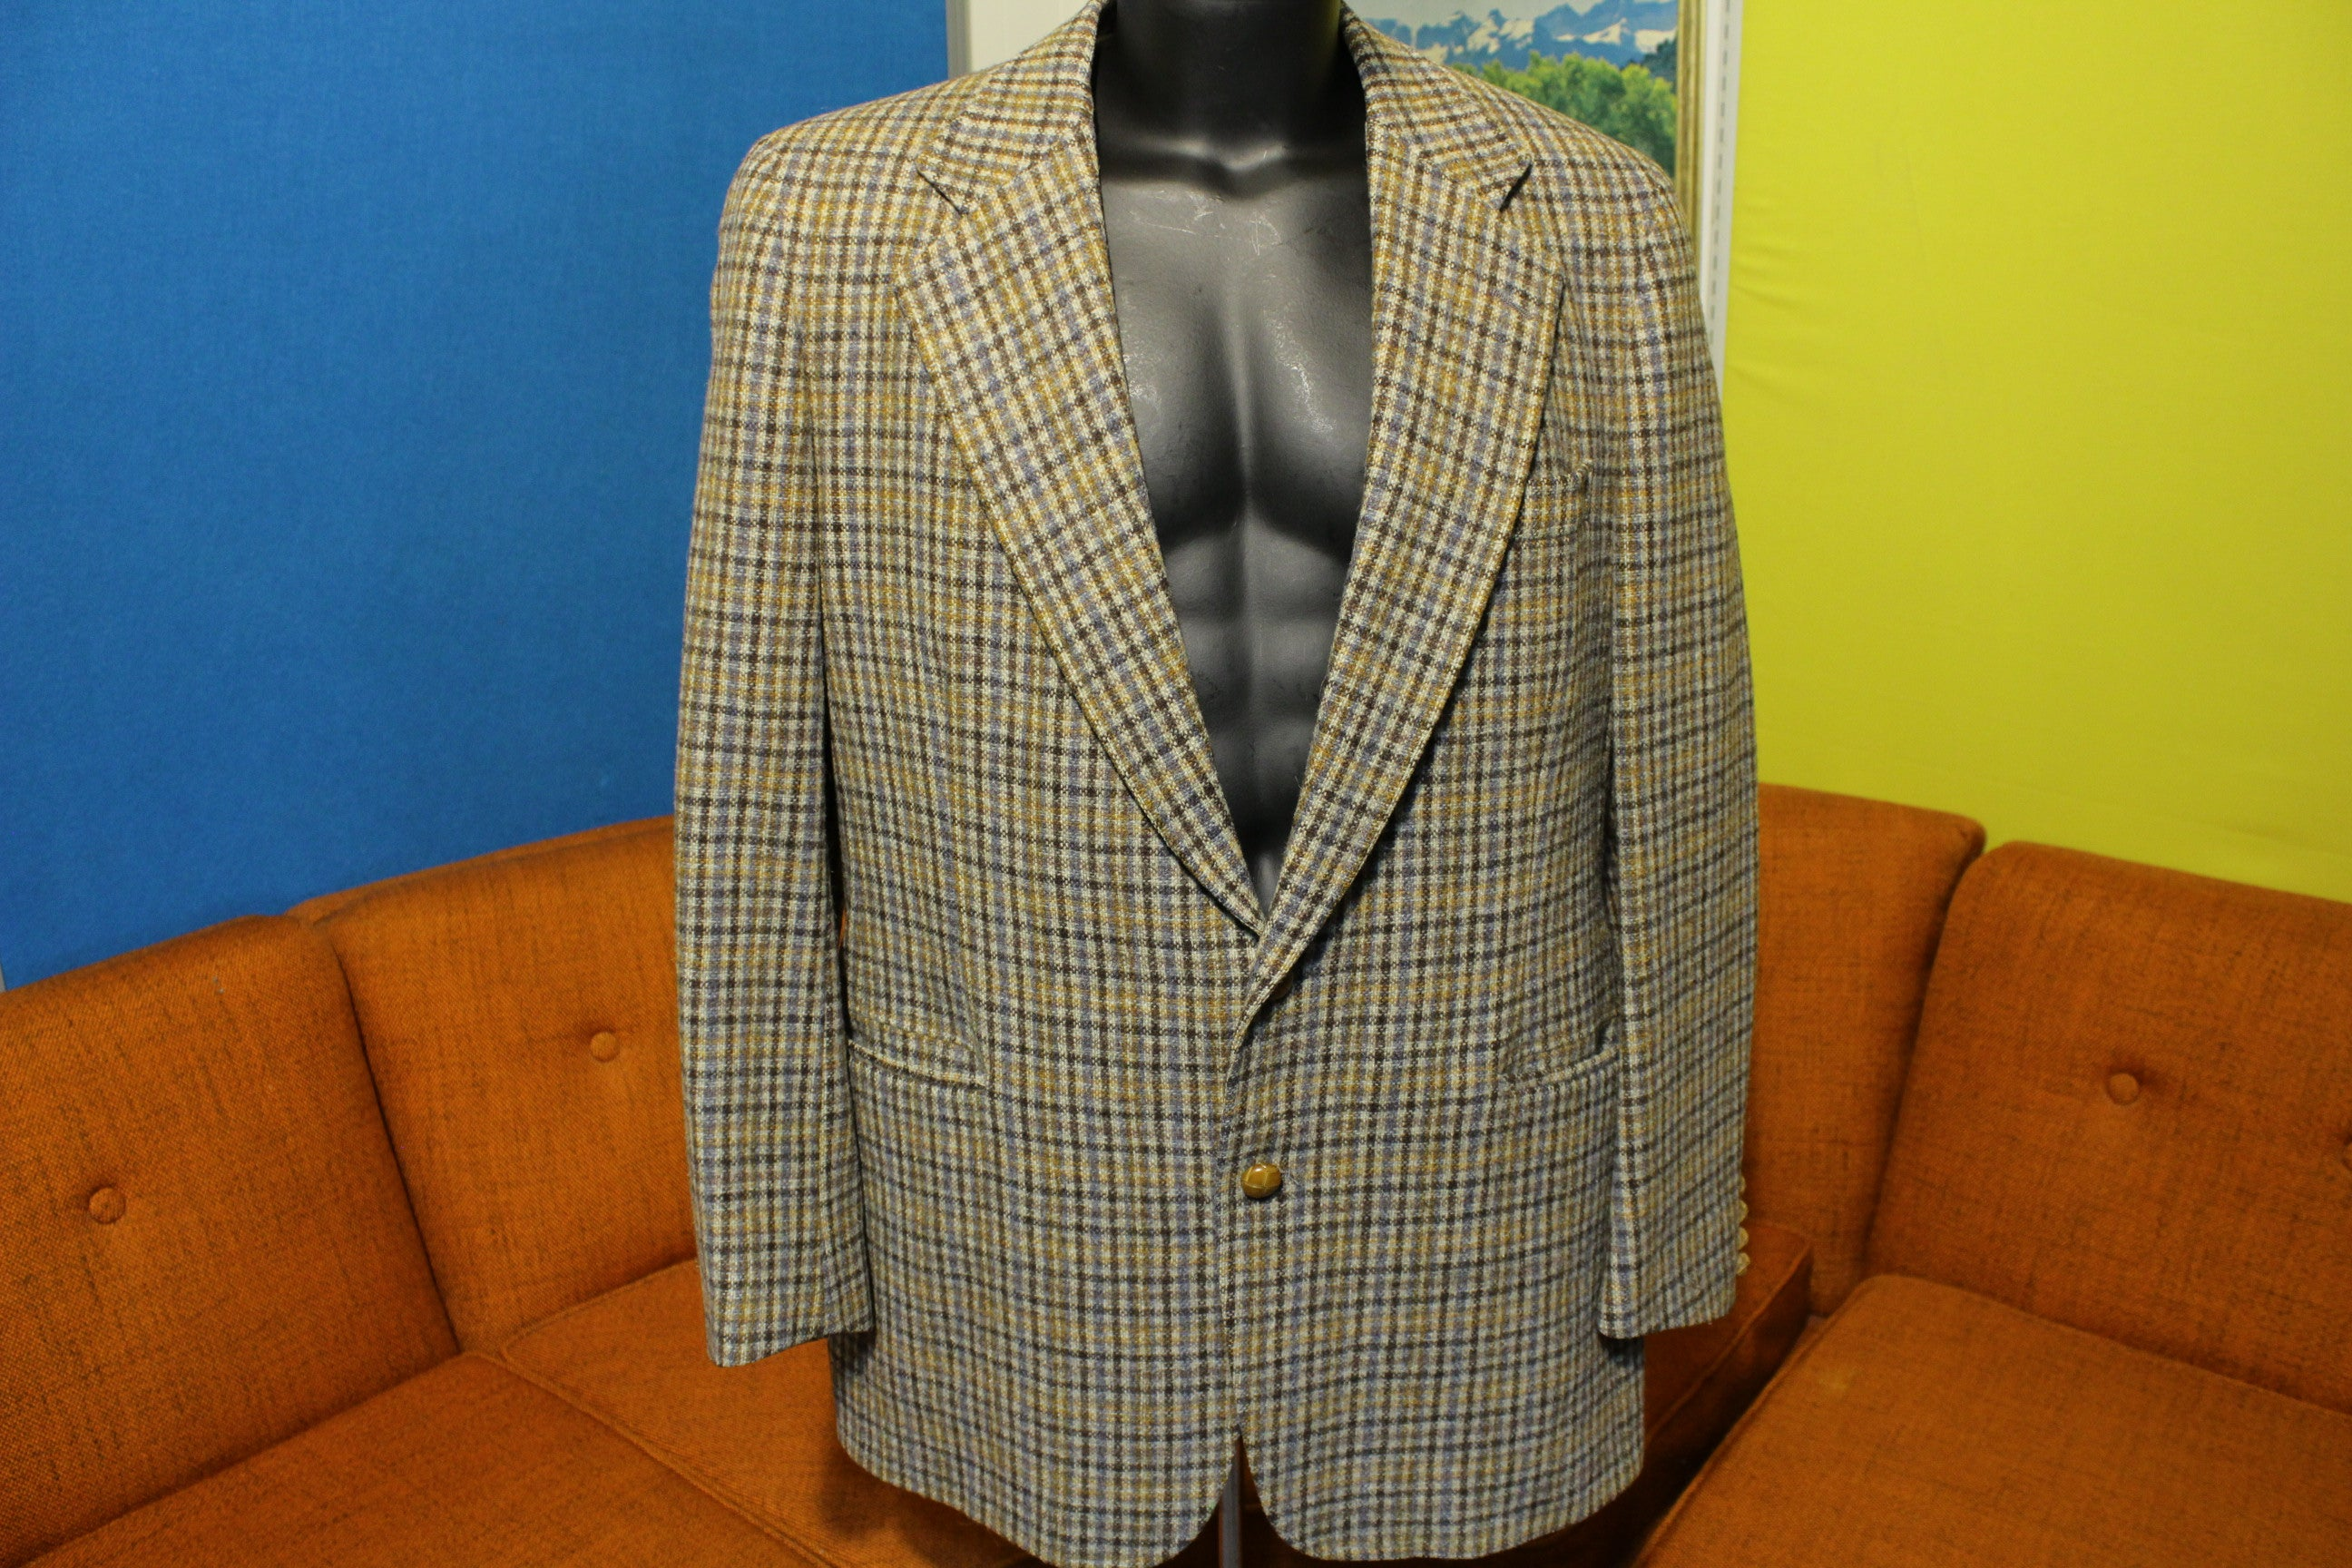 Chaps by Ralph Lauren Vintage 70's Tweed Plaid Wool Blazer. Rare Suit Jacket.